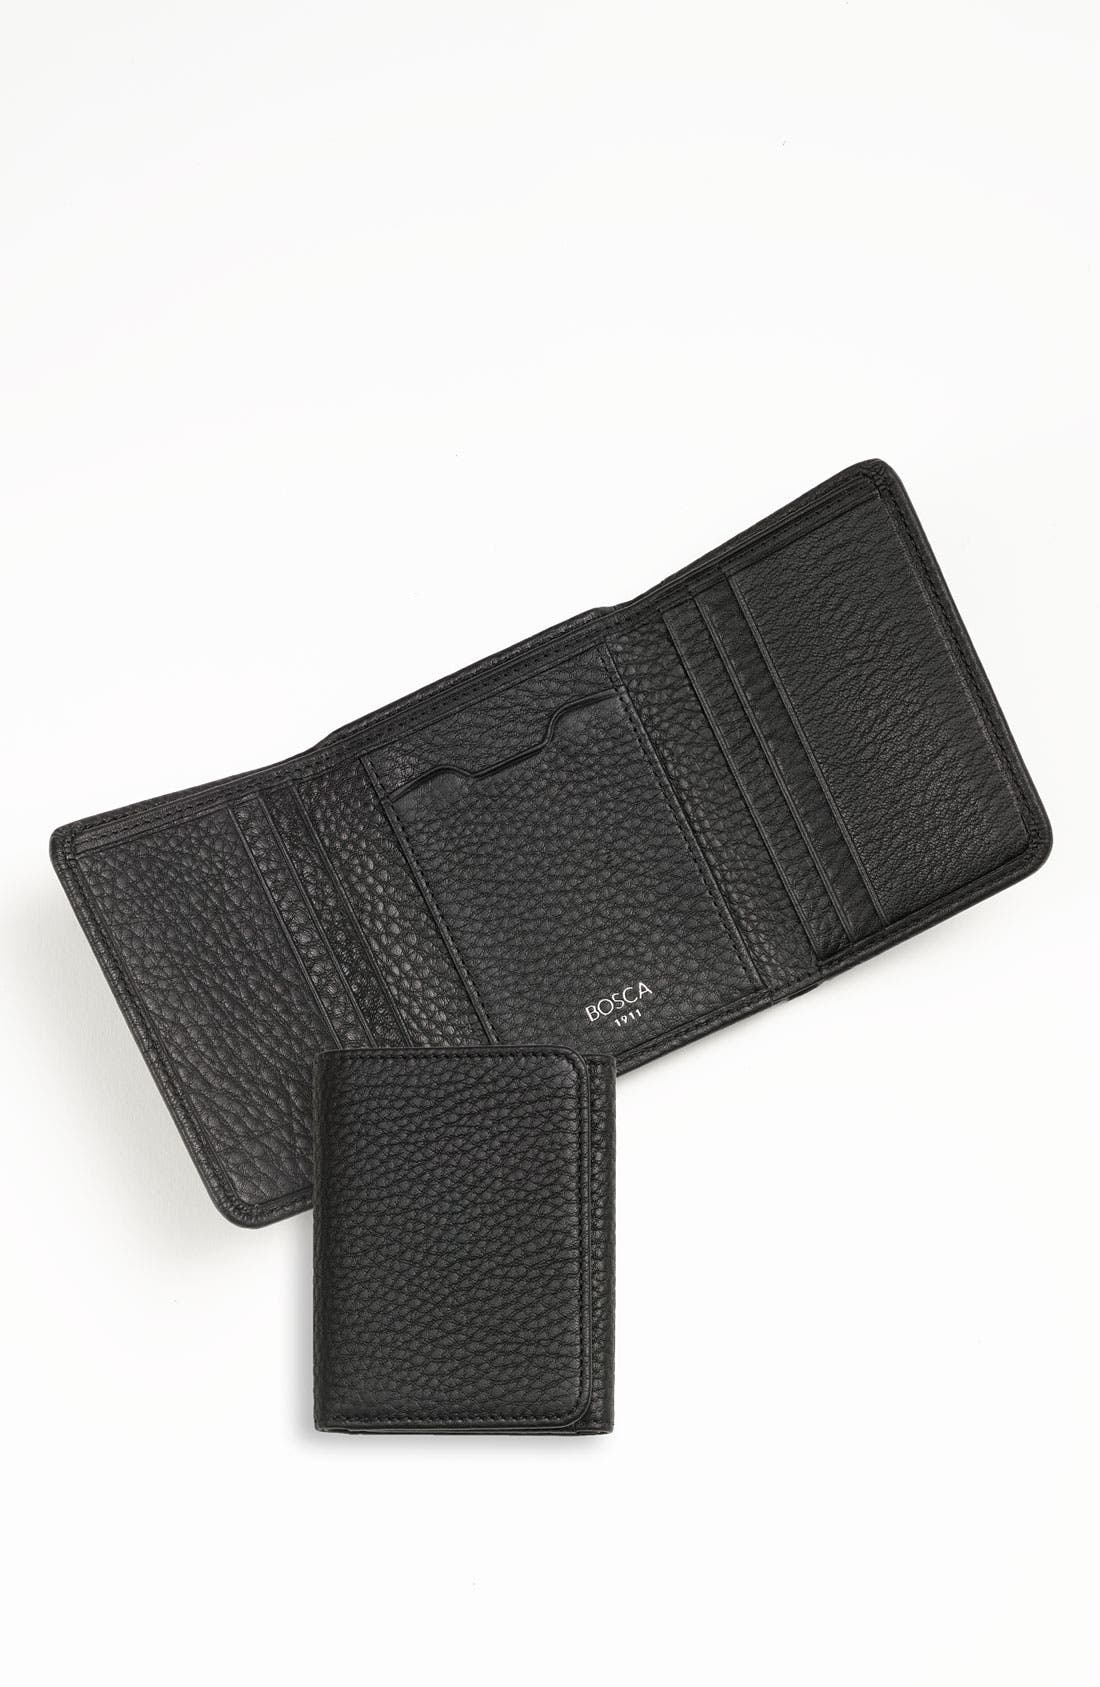 Alternate Image 1 Selected - Bosca 'Tribeca' Trifold Wallet